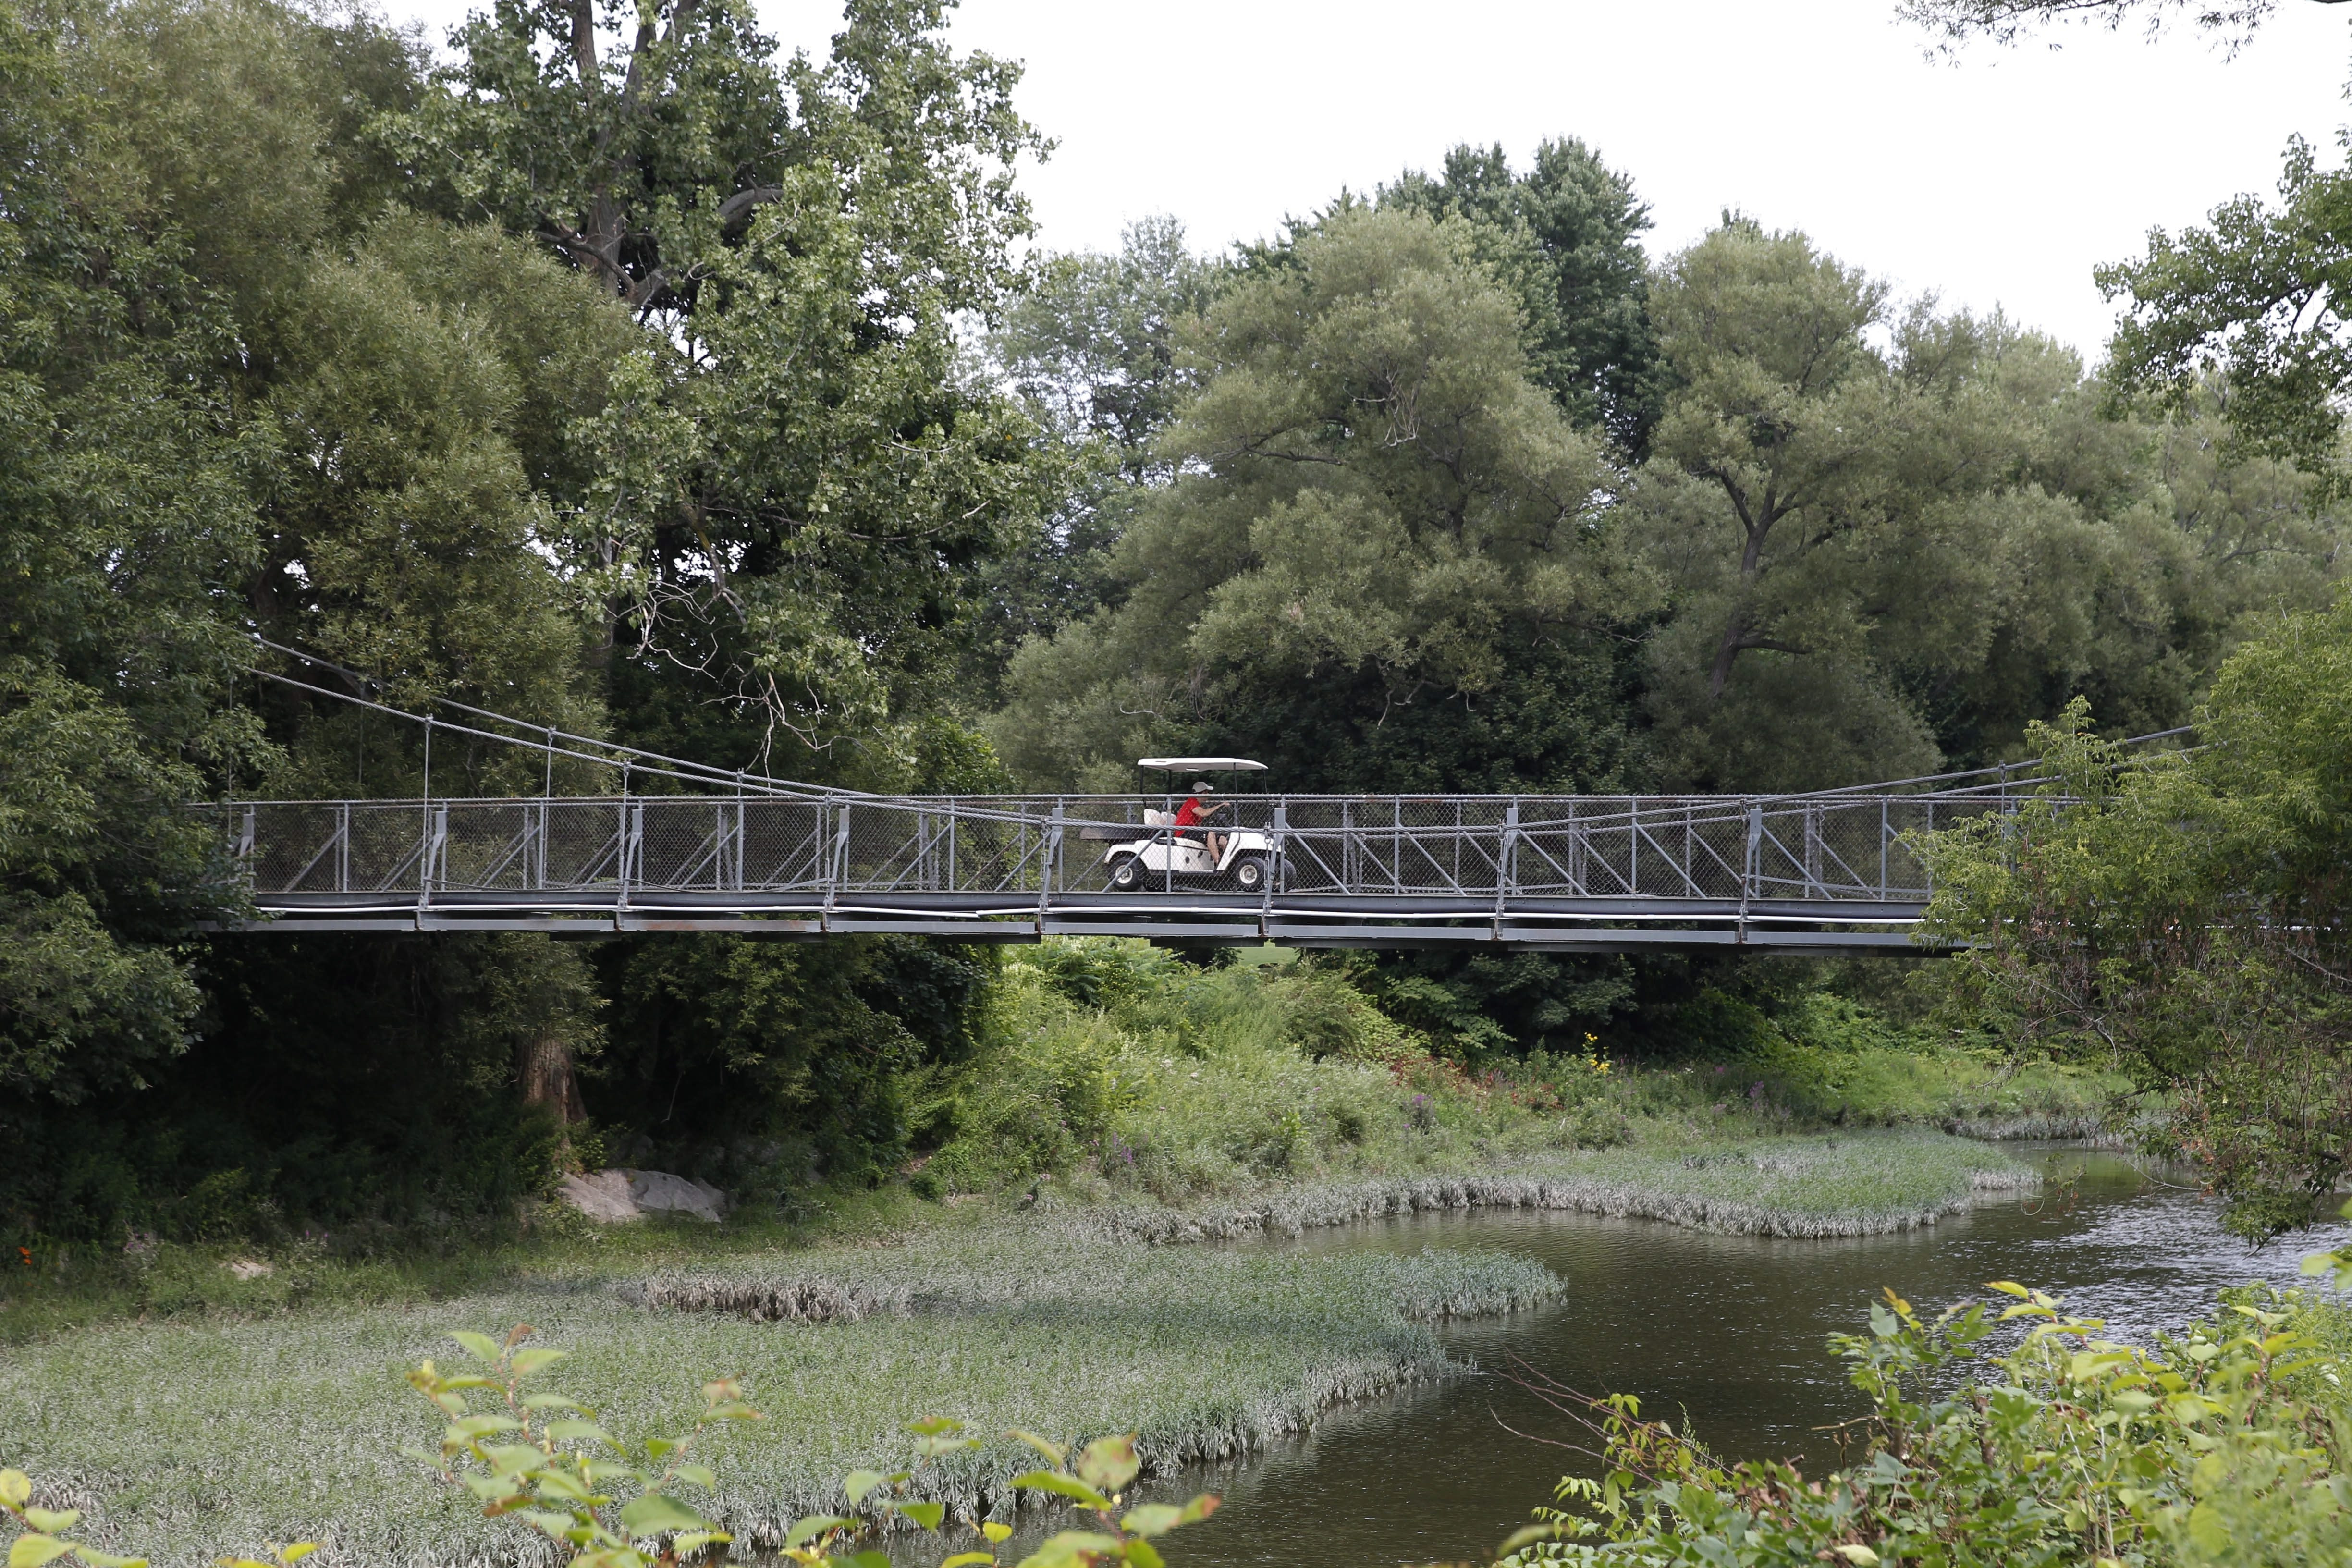 There are hidden gems in each of the Olmsted Parks in Buffalo.  Buffalo's suspension bridge is on the golf course over the Cazenovia Creek at Cazenovia Park.  It was built in the 1930s.   Photo taken Friday, Aug. 8, 2014.  (Sharon Cantillon/Buffalo News)